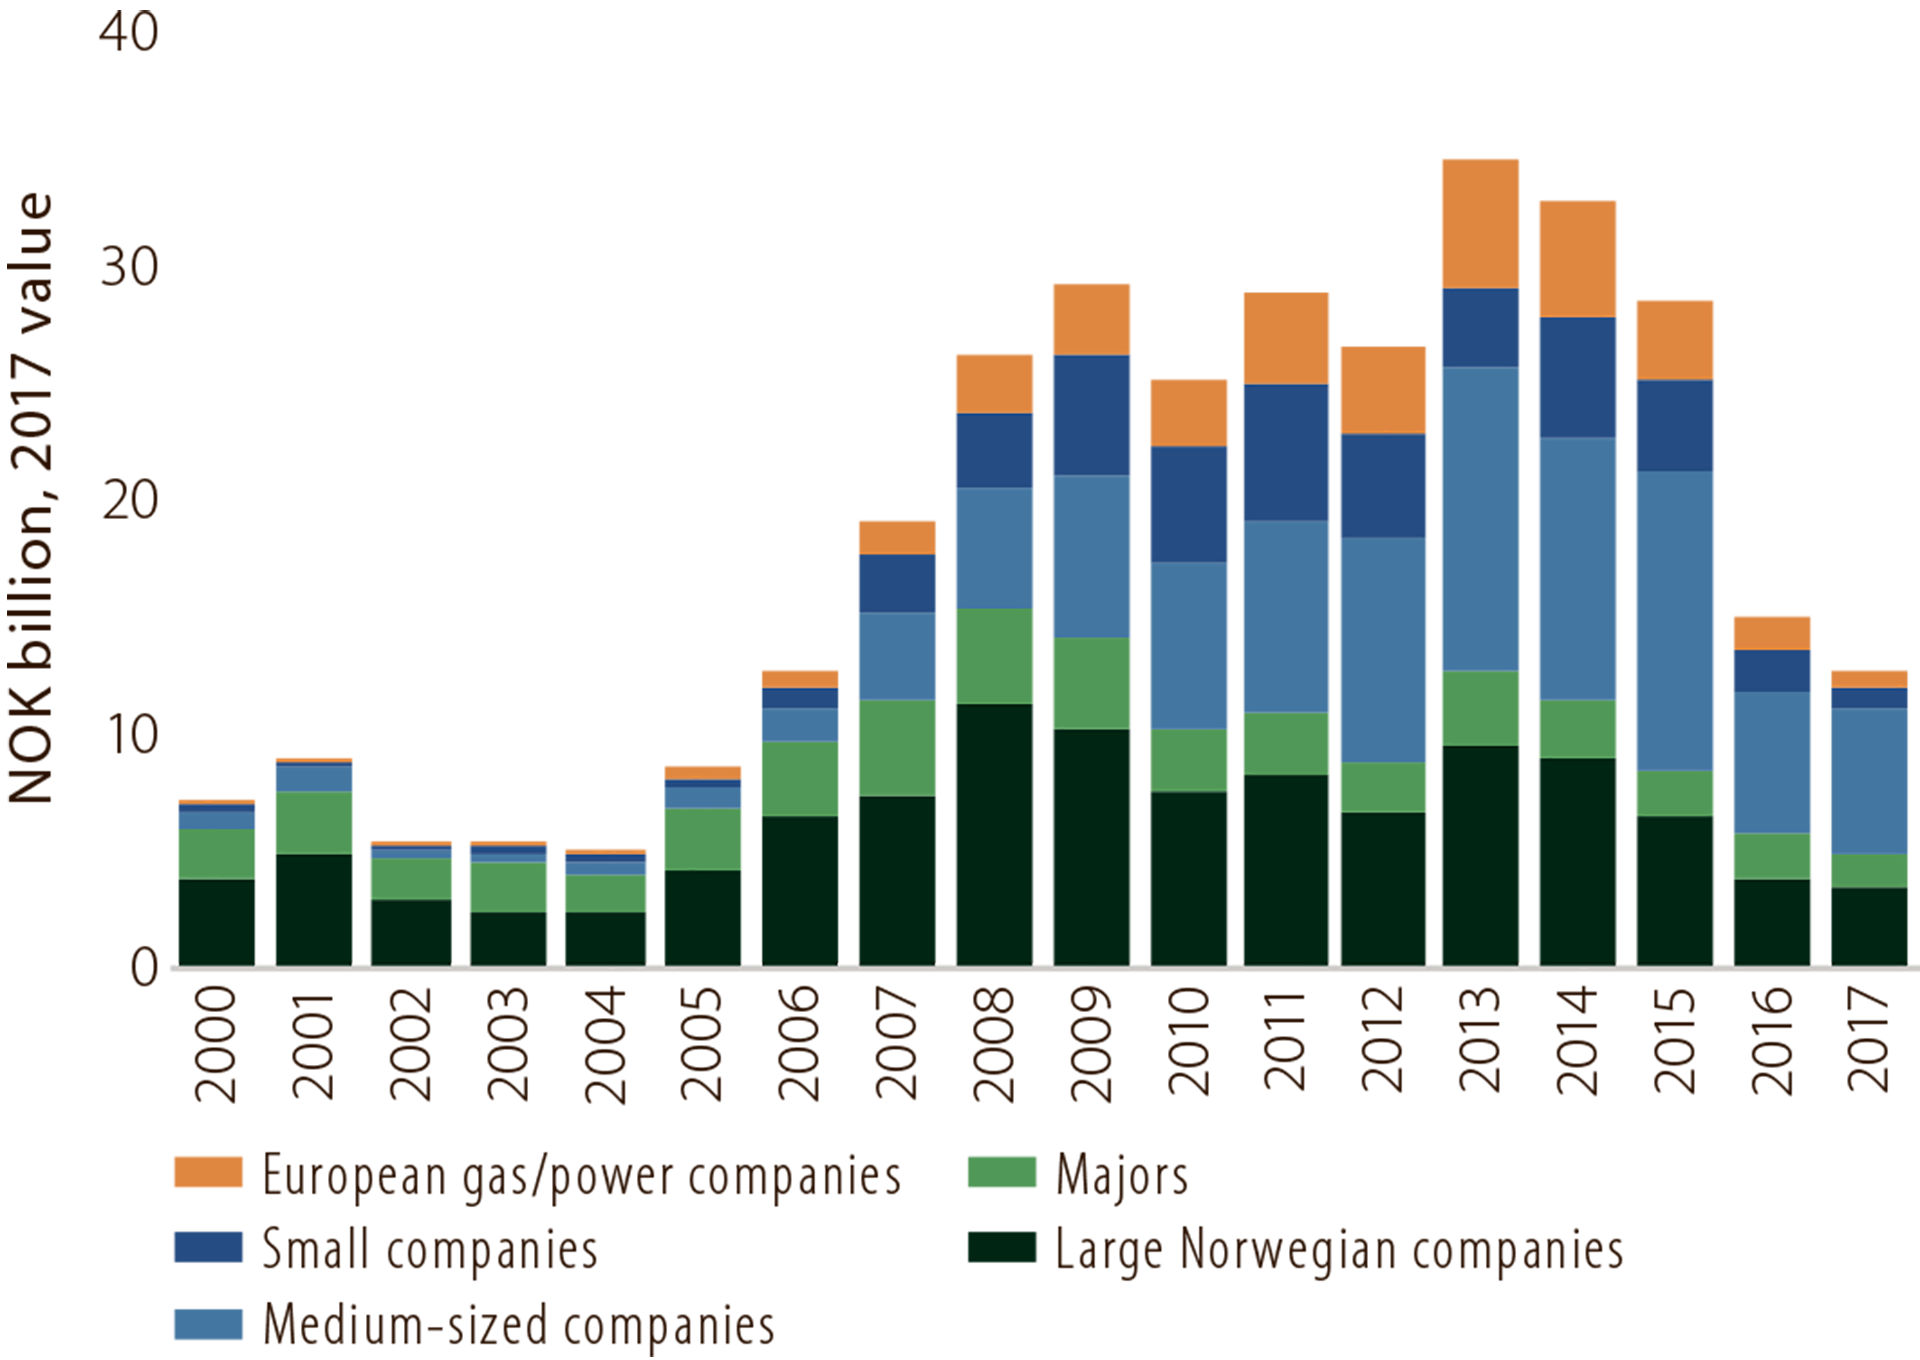 Figure 5.7 Investment in exploration in 2000-17 by company category (licensees).